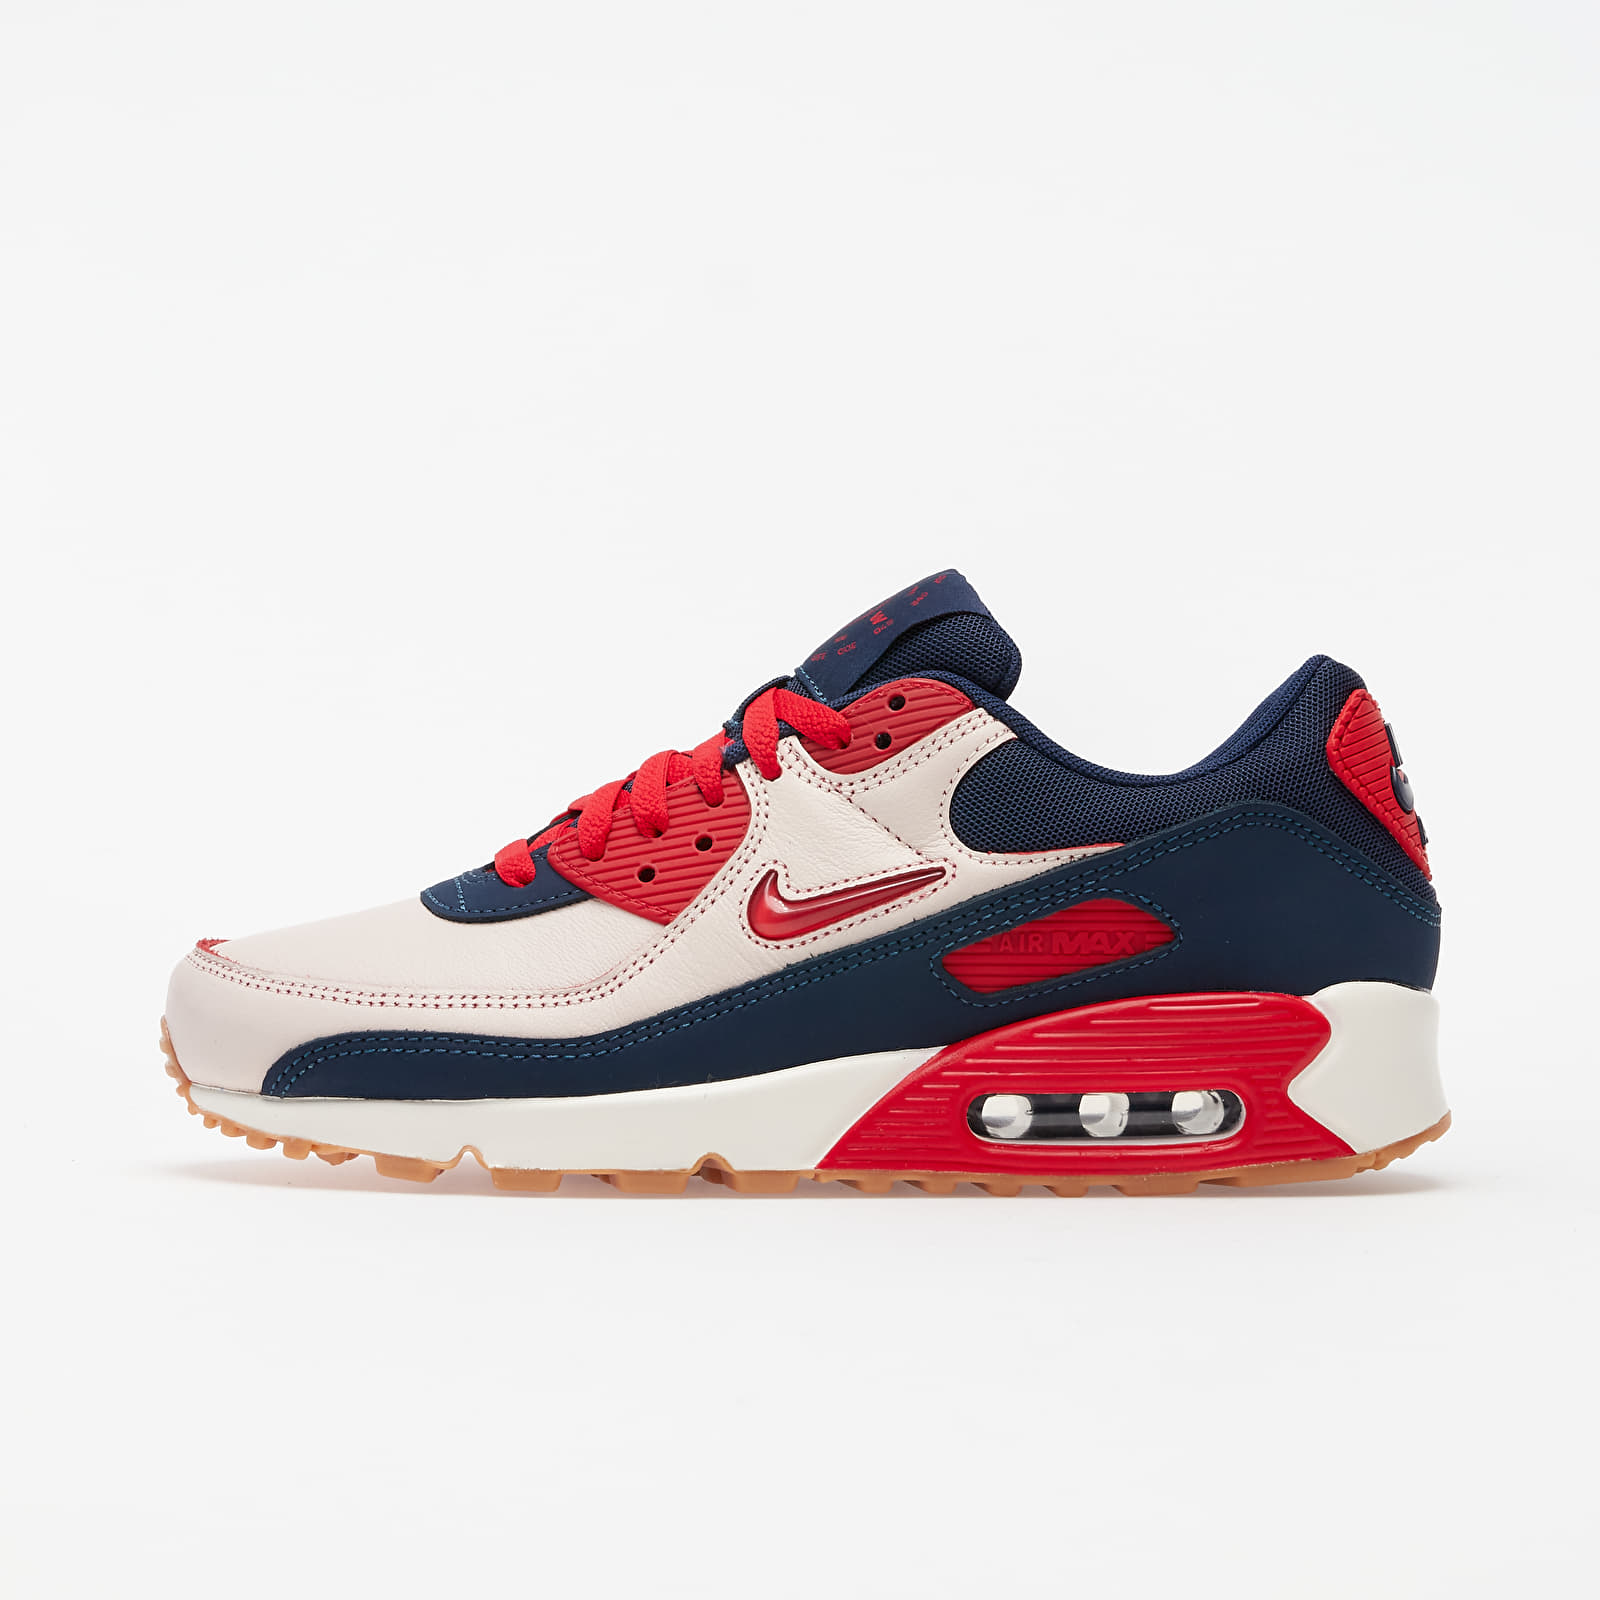 Férfi cipők Nike Air Max 90 Premium Sail/ University Red-Midnight Navy